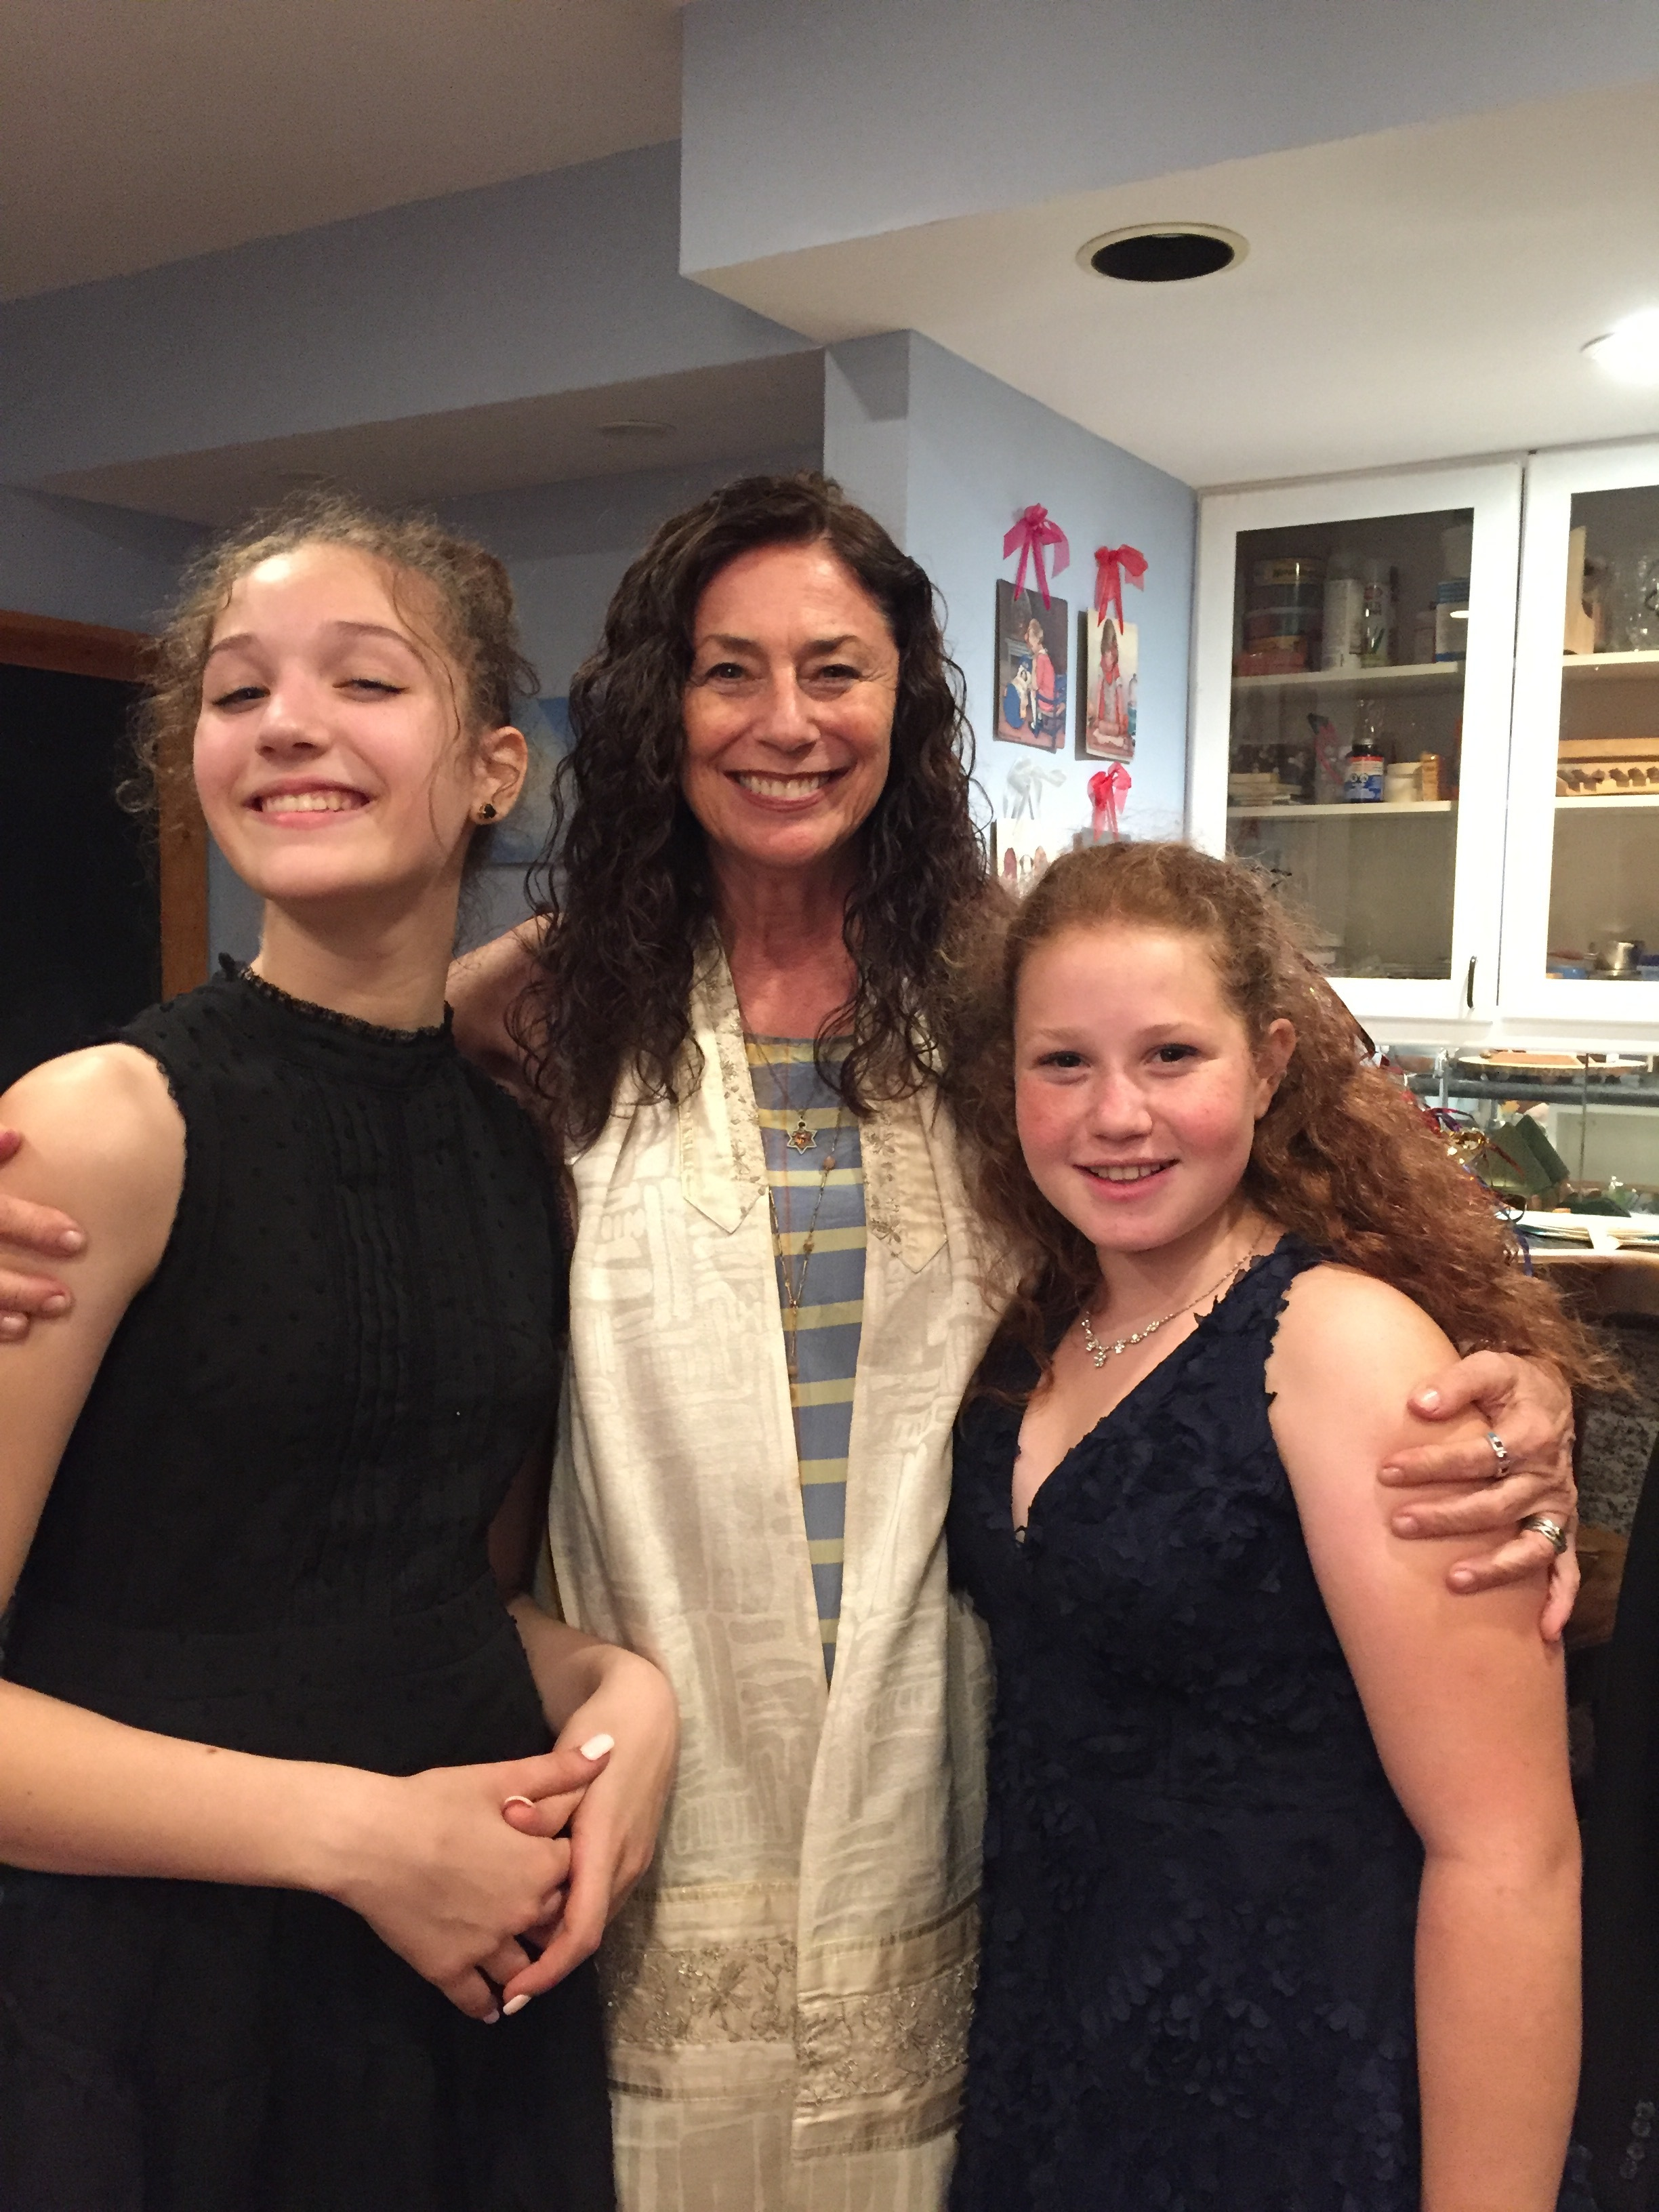 So proud of my two young ladies who became  Bat Mitzvah together in shared ceremony.